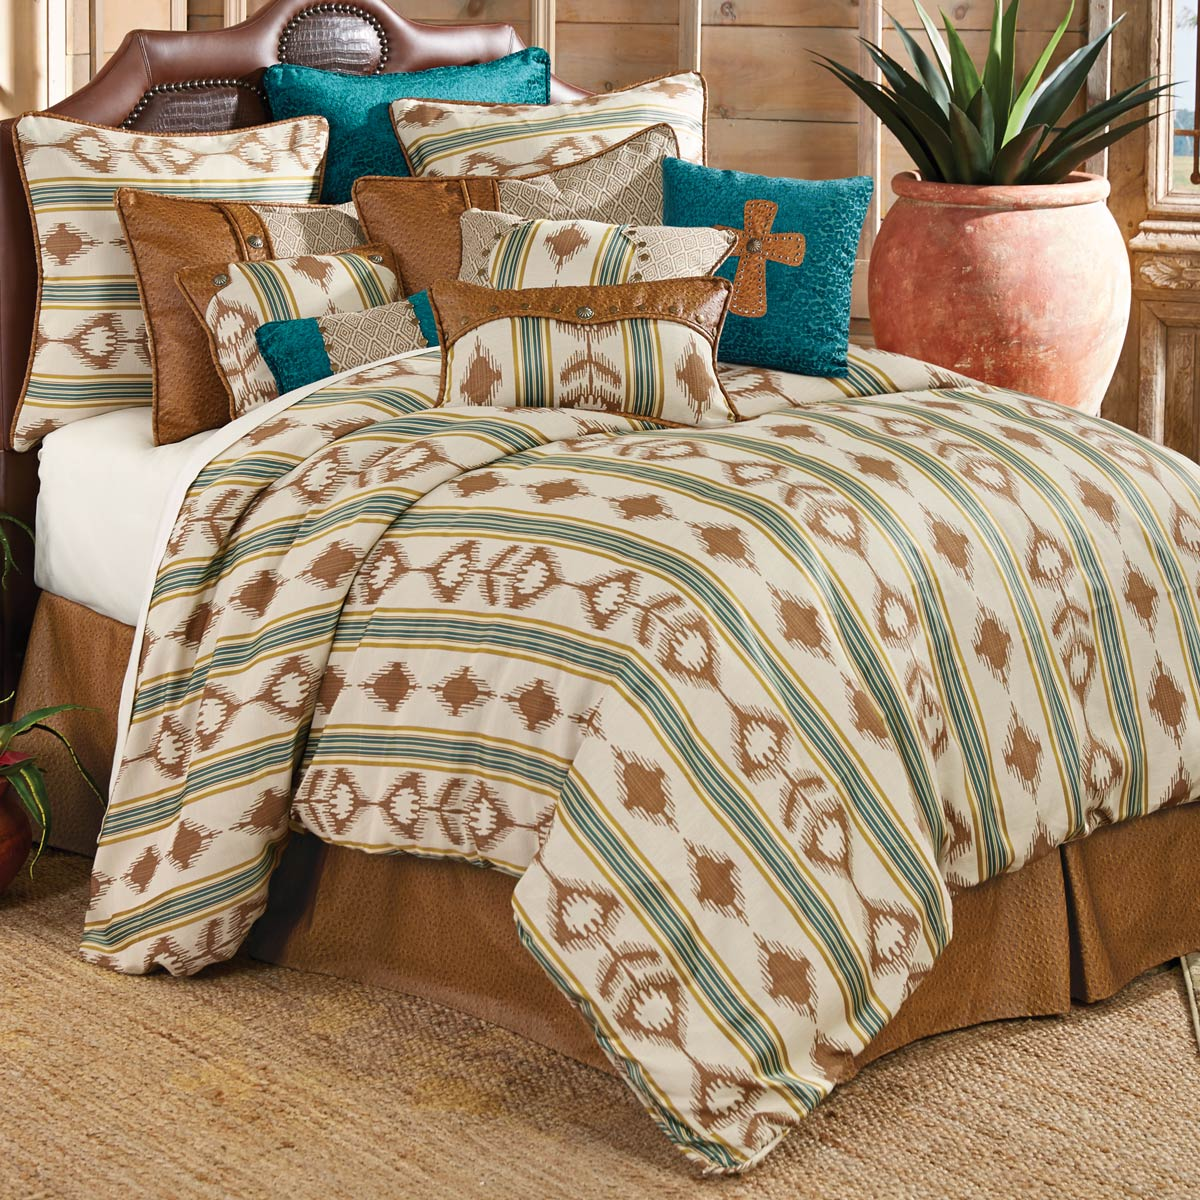 Blue Eagle Bed Set - Super Queen